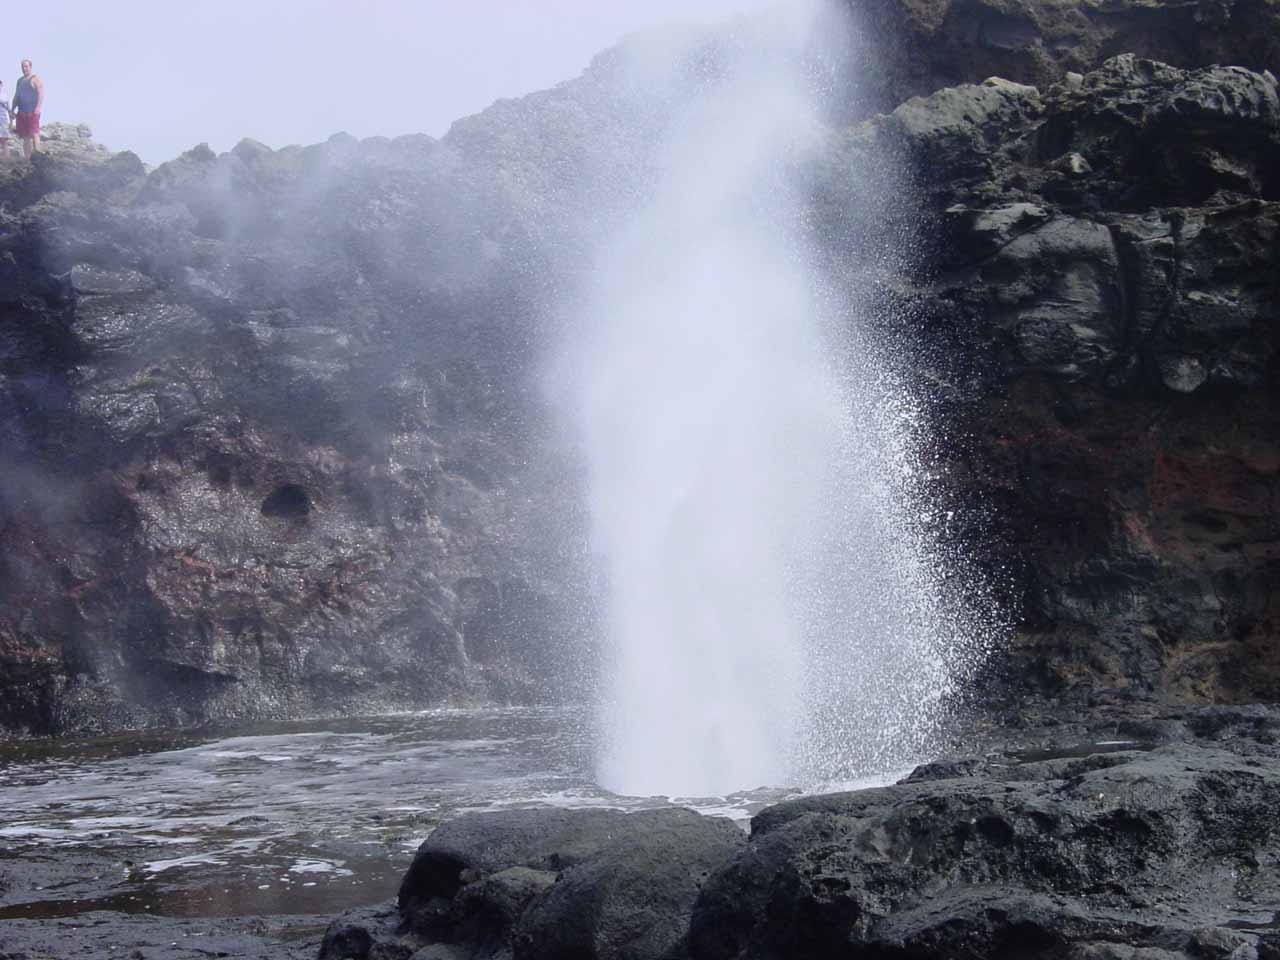 The day we first visited Lower Makamakaole Falls was part of a day where we drove around West Maui, which included a stop at the Nakalele Blowhole